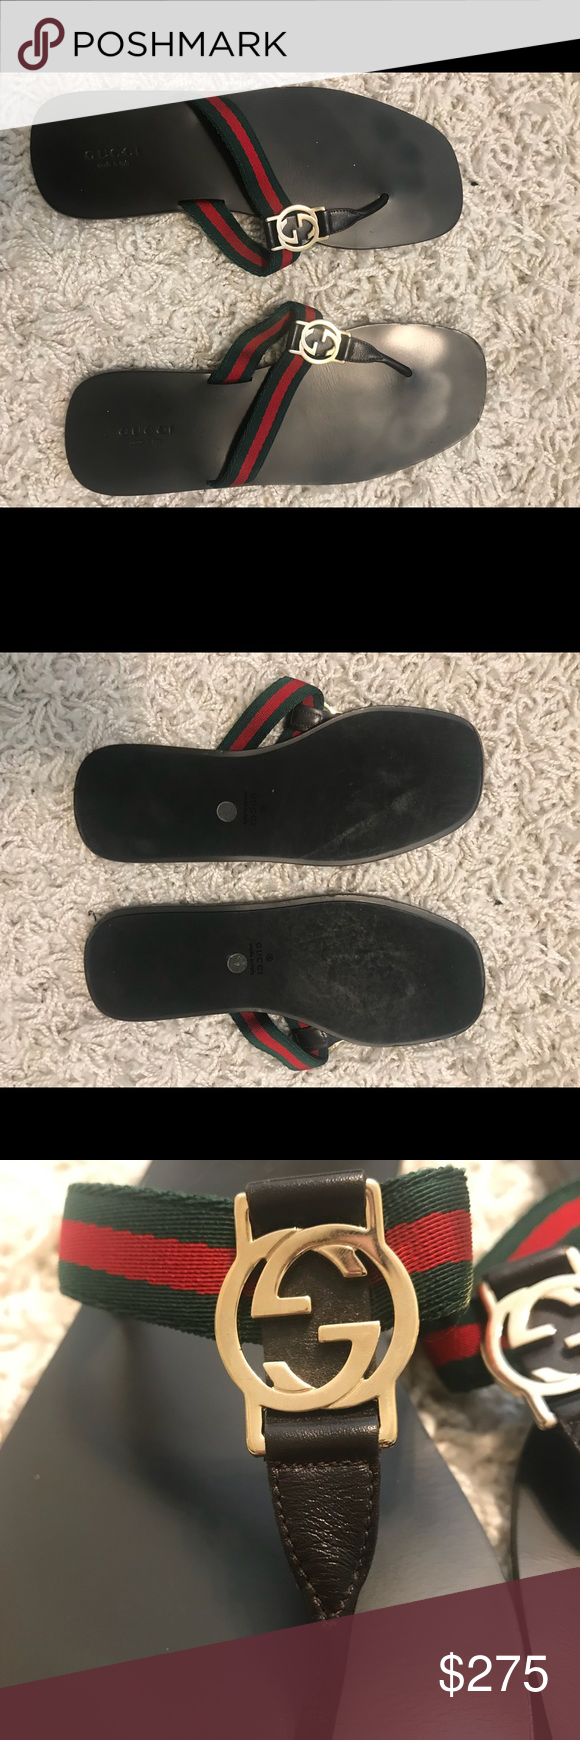 369311e148830 Gucci Thong Sandals size 8 Beautiful Gucci Thong Sandals in great  condition. Comes with original Gucci shoe bags. Gucci Shoes Sandals